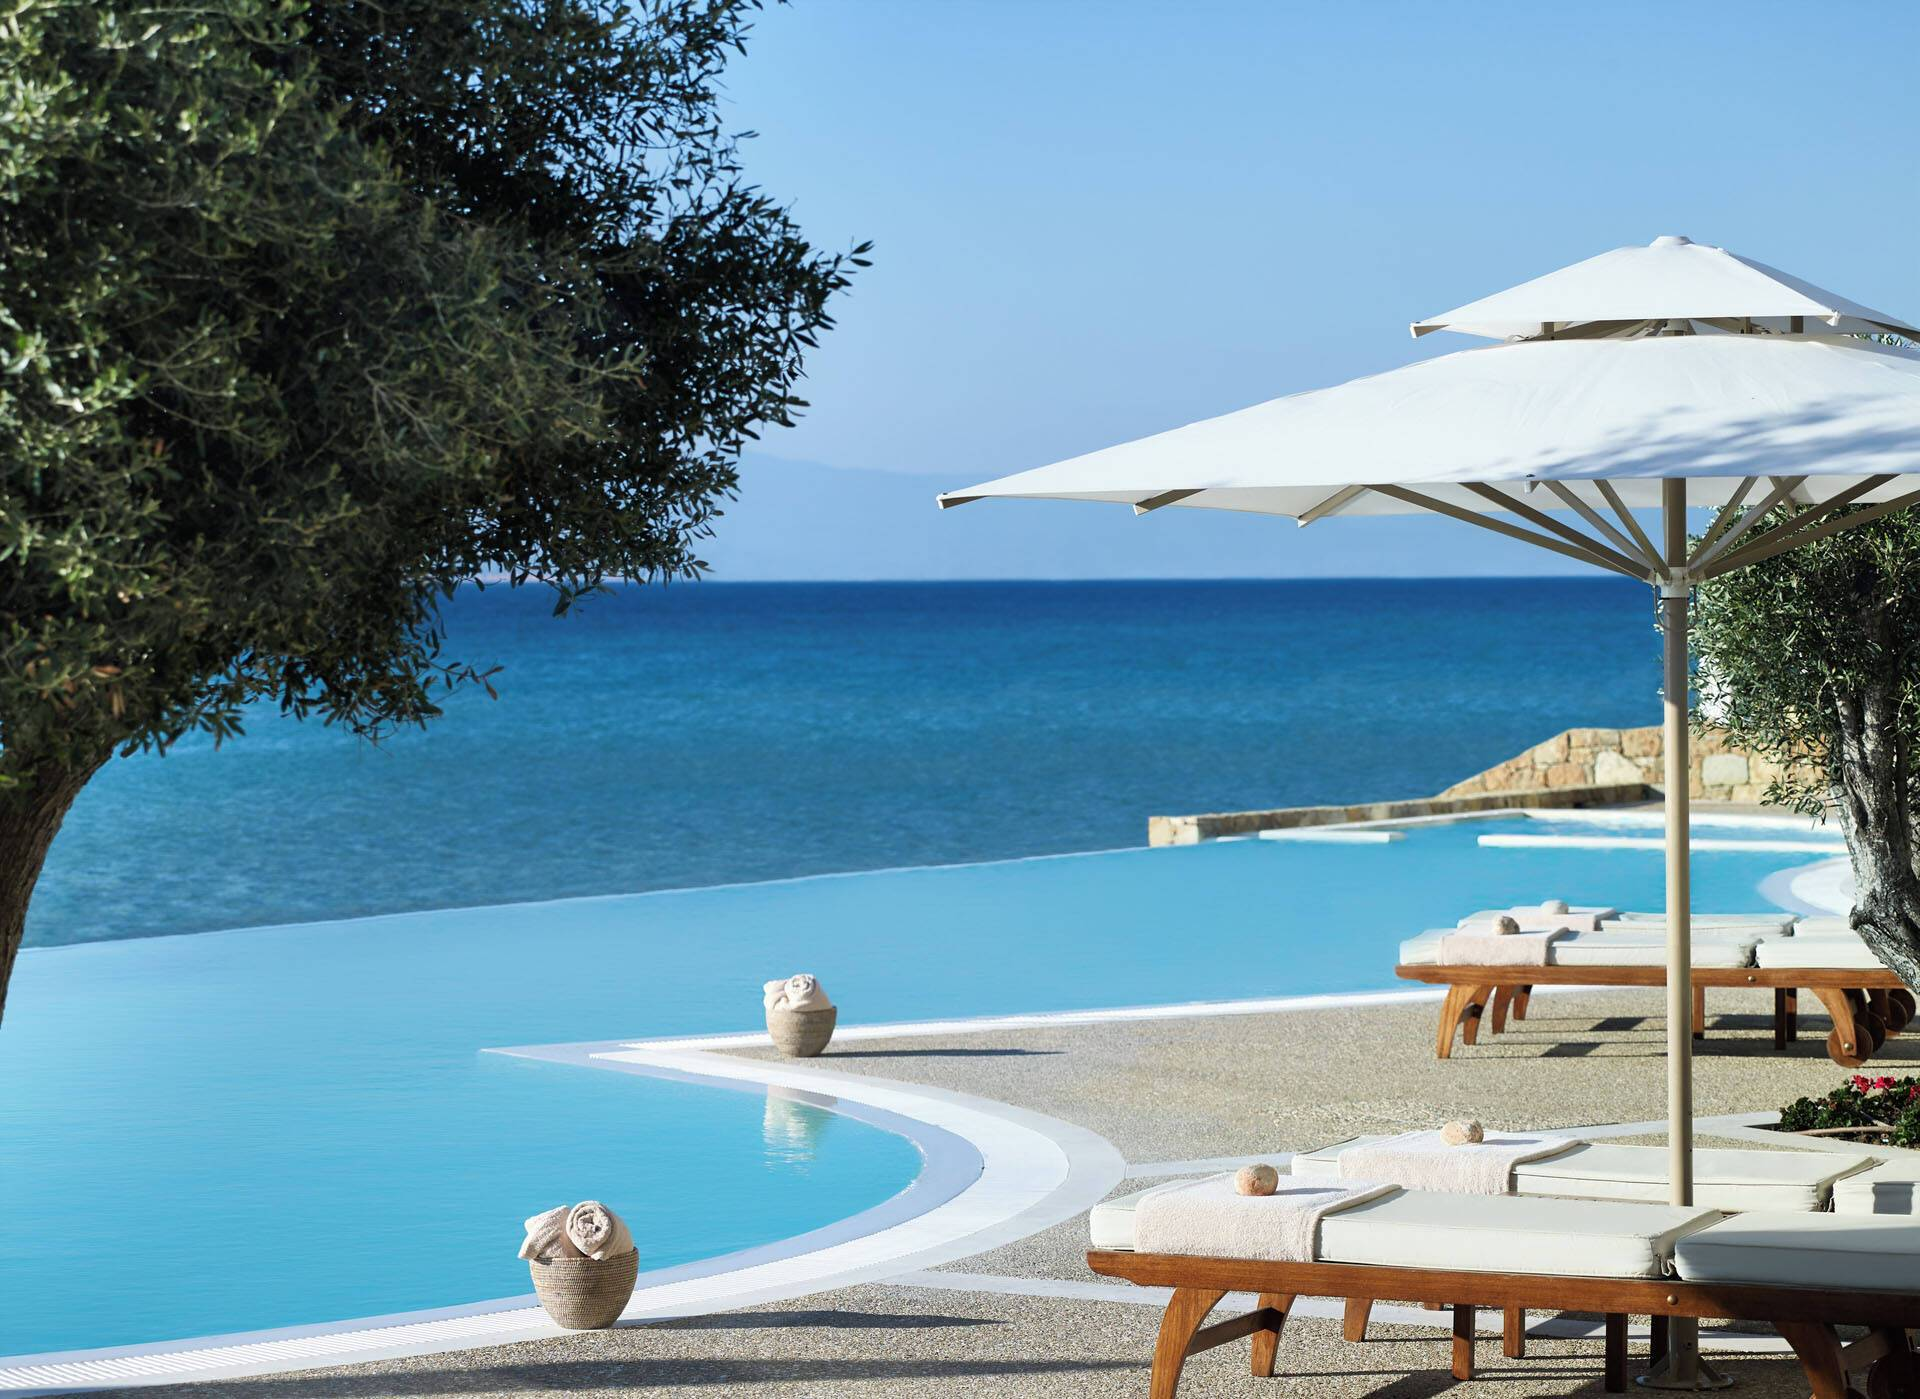 Sani Resort Thessalonique Grece Infinity Pool